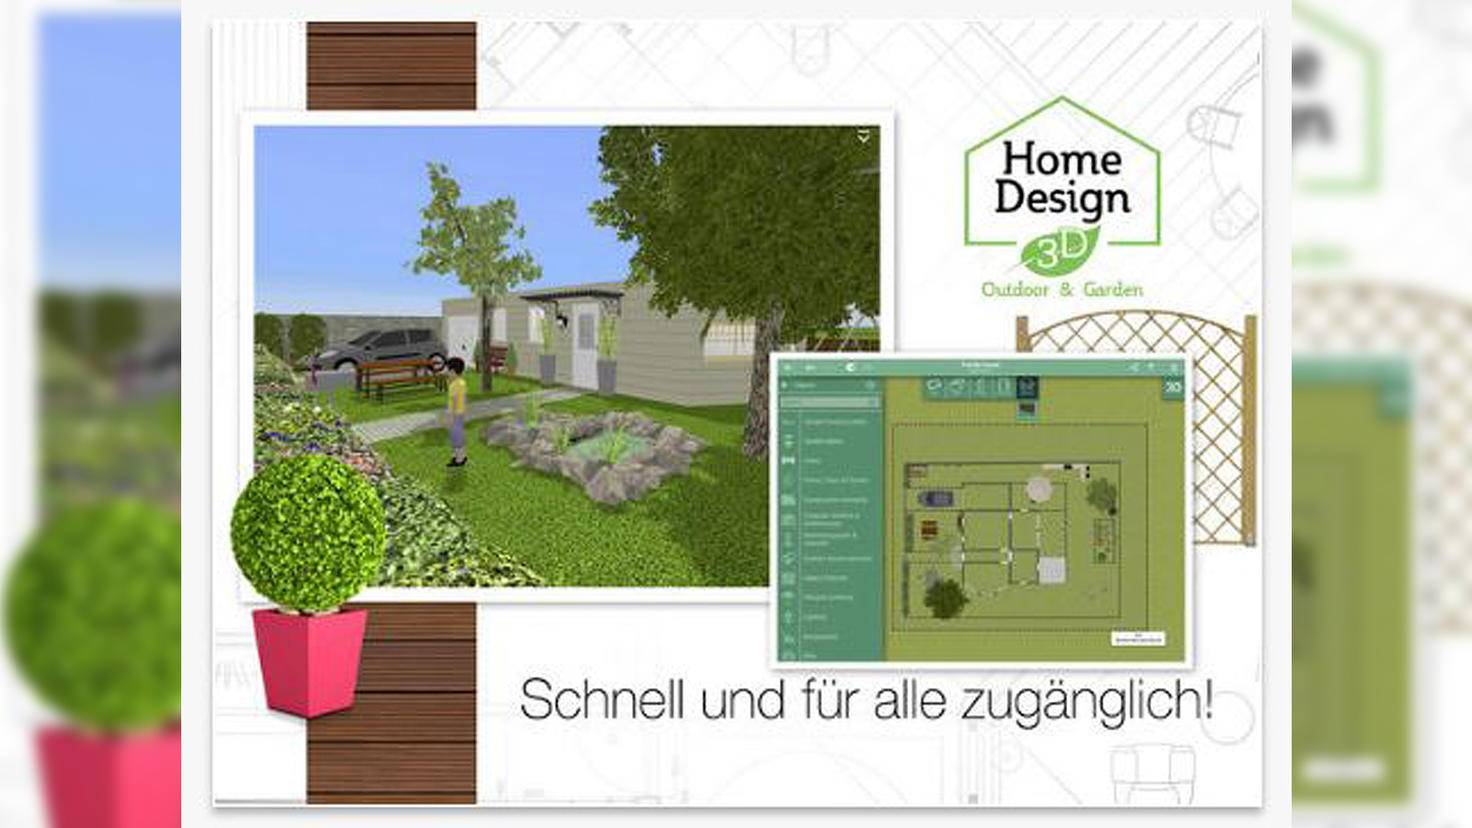 Home Design 3D Outdoor and Garden-Anuman